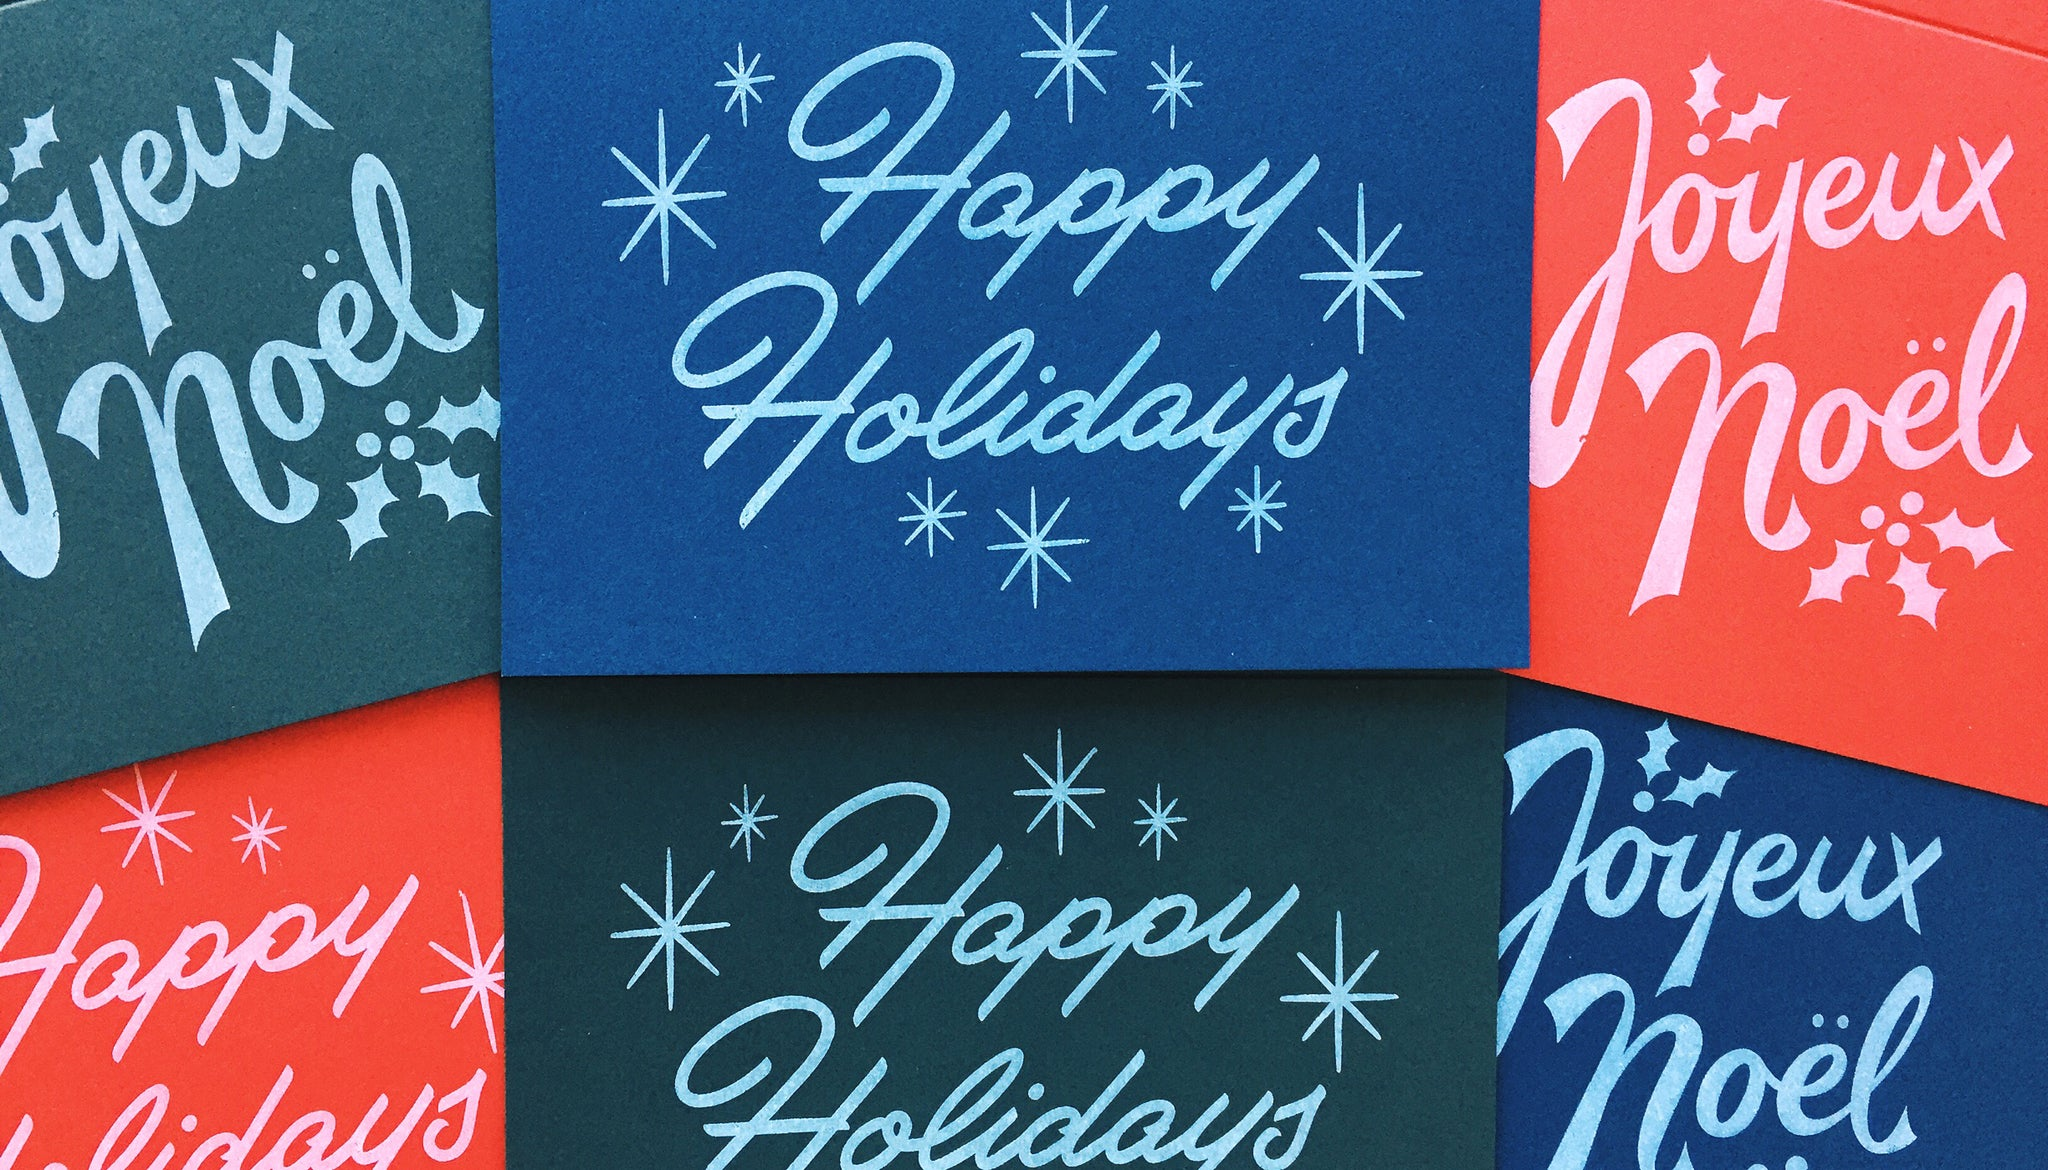 Our holiday cards come on Red, Green and Blue paper from French Paper Co.